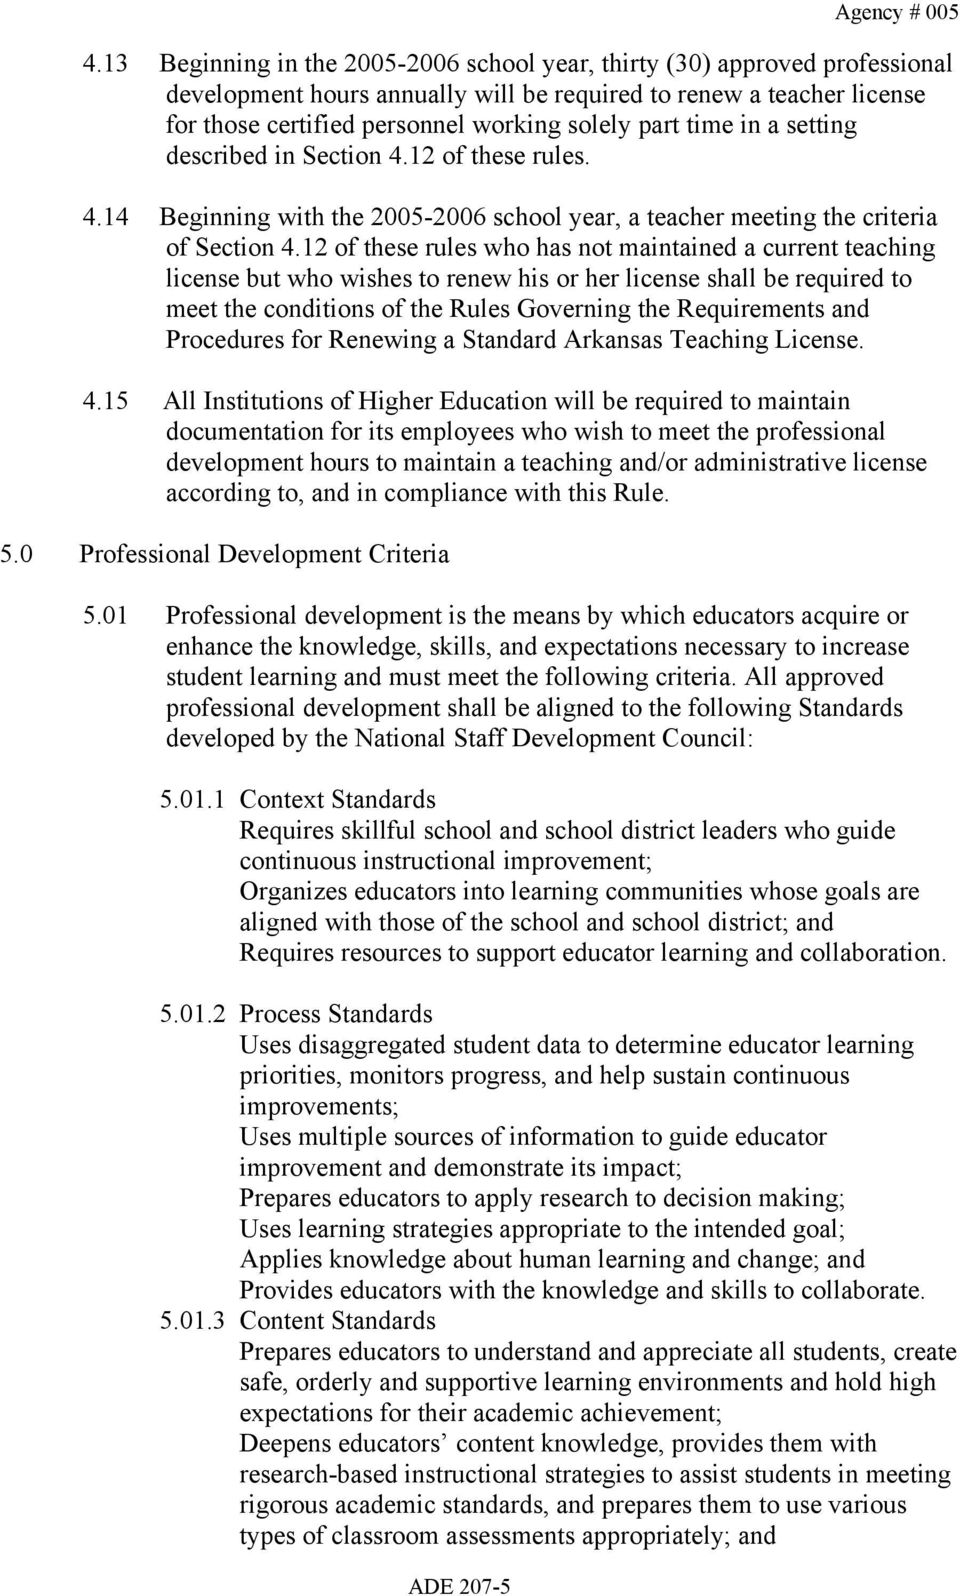 time in a setting described in Section 4.12 of these rules. 4.14 Beginning with the 2005-2006 school year, a teacher meeting the criteria of Section 4.